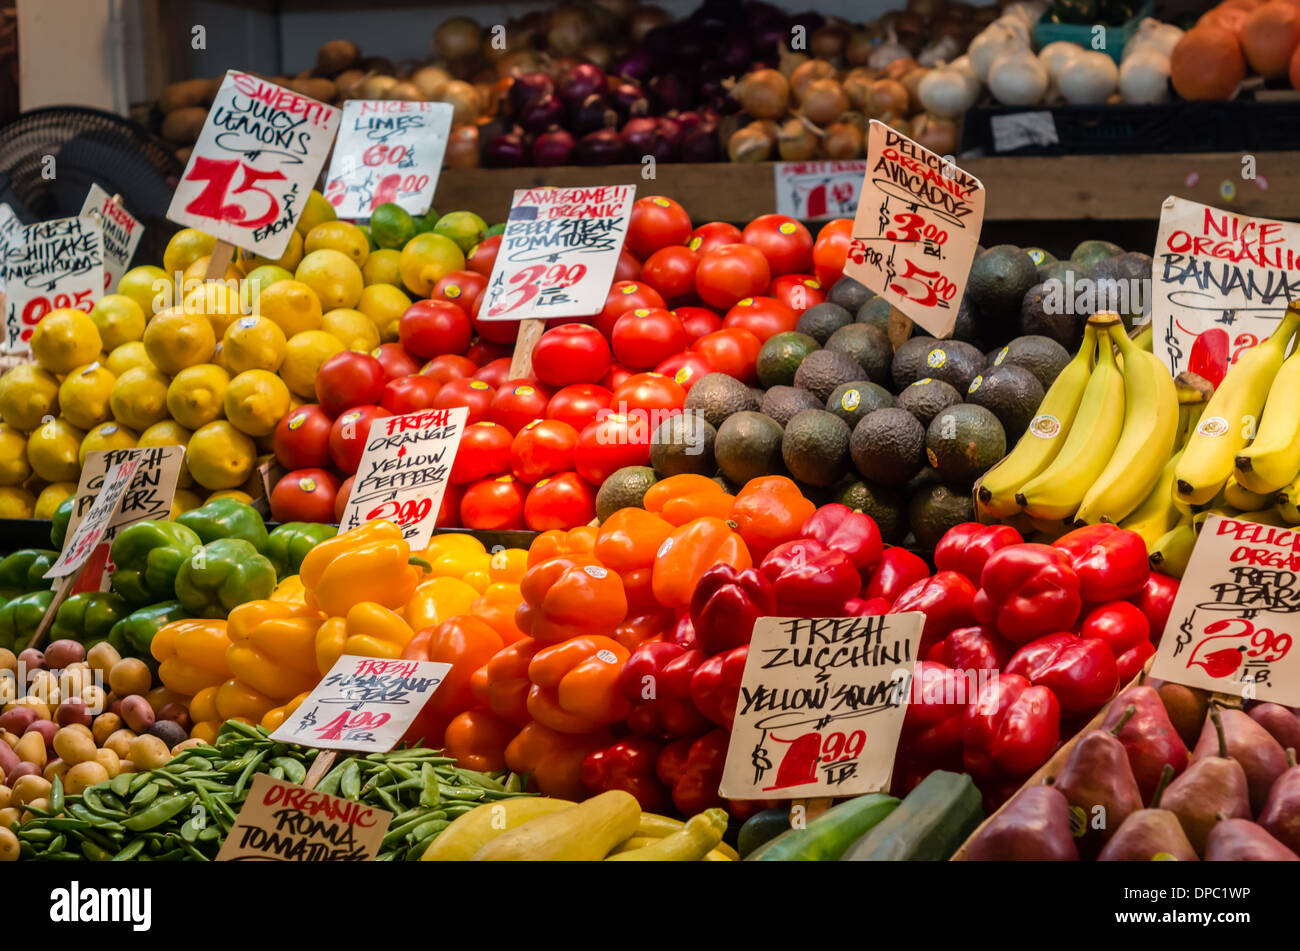 display of fruits and vegetables with signs at a produce market